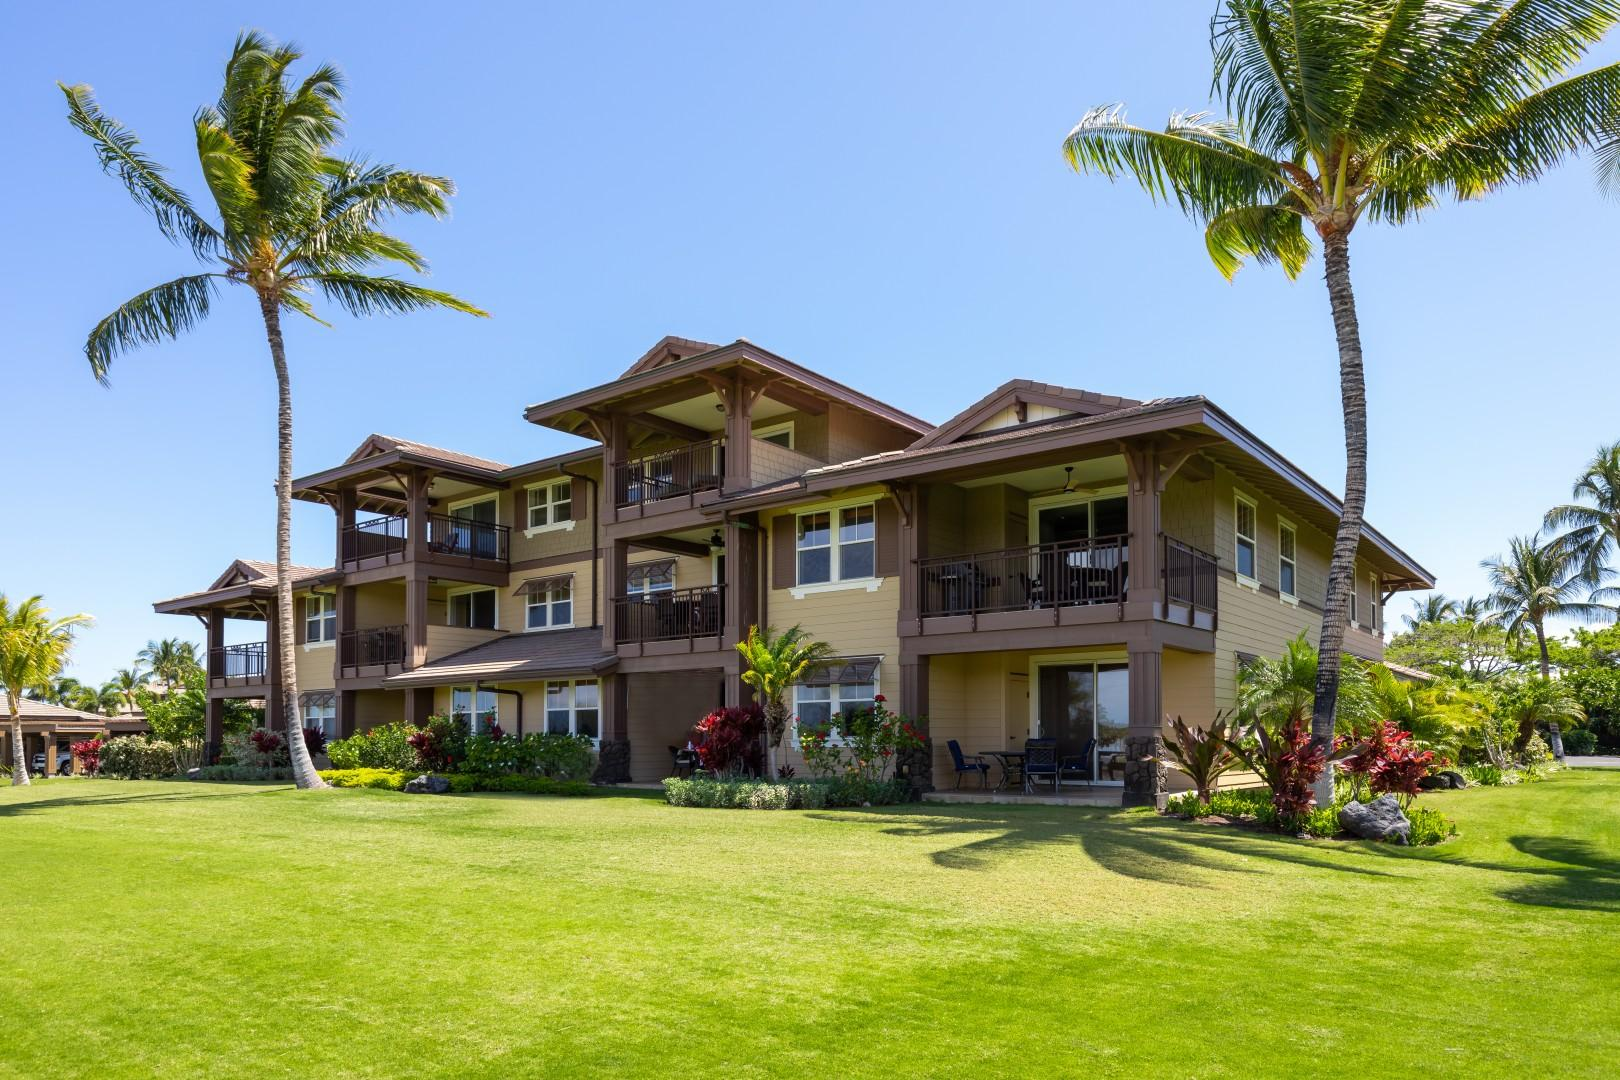 The golf front side of the building has beautiful tropical landscaping.